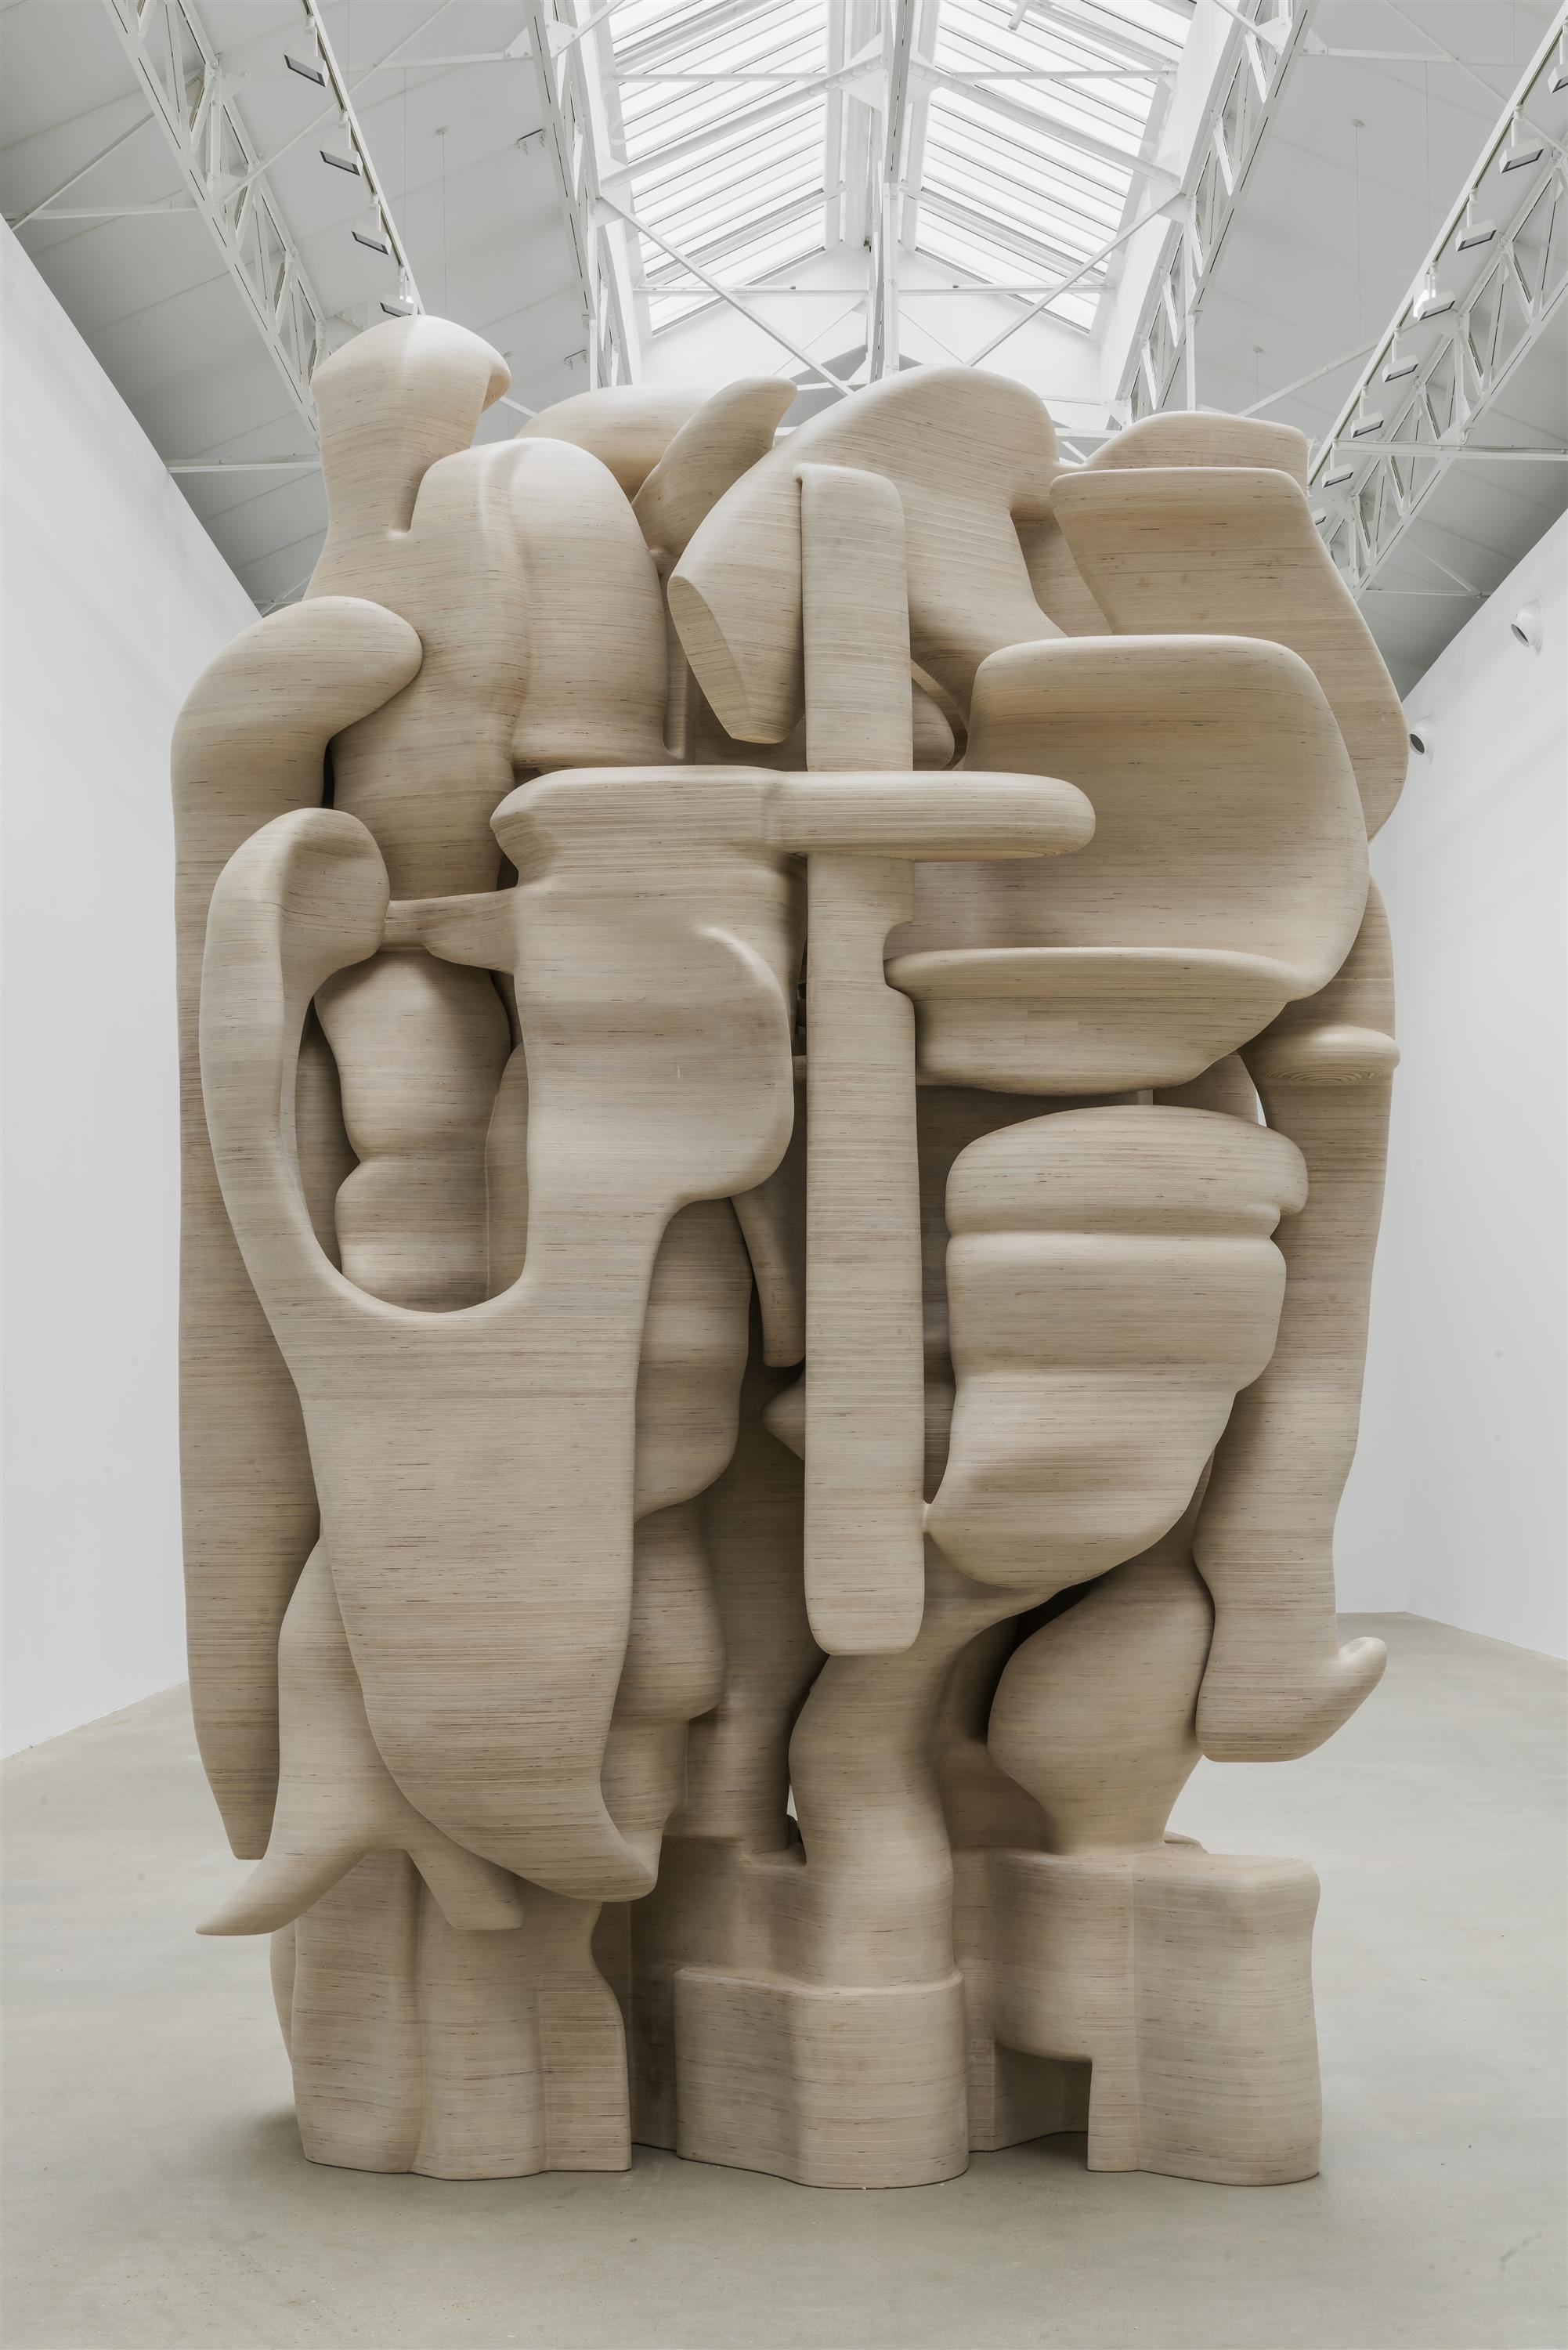 Tony Cragg  Lost in Thought  2012 50x220x300 cm Wood Photo:Charles Duprat